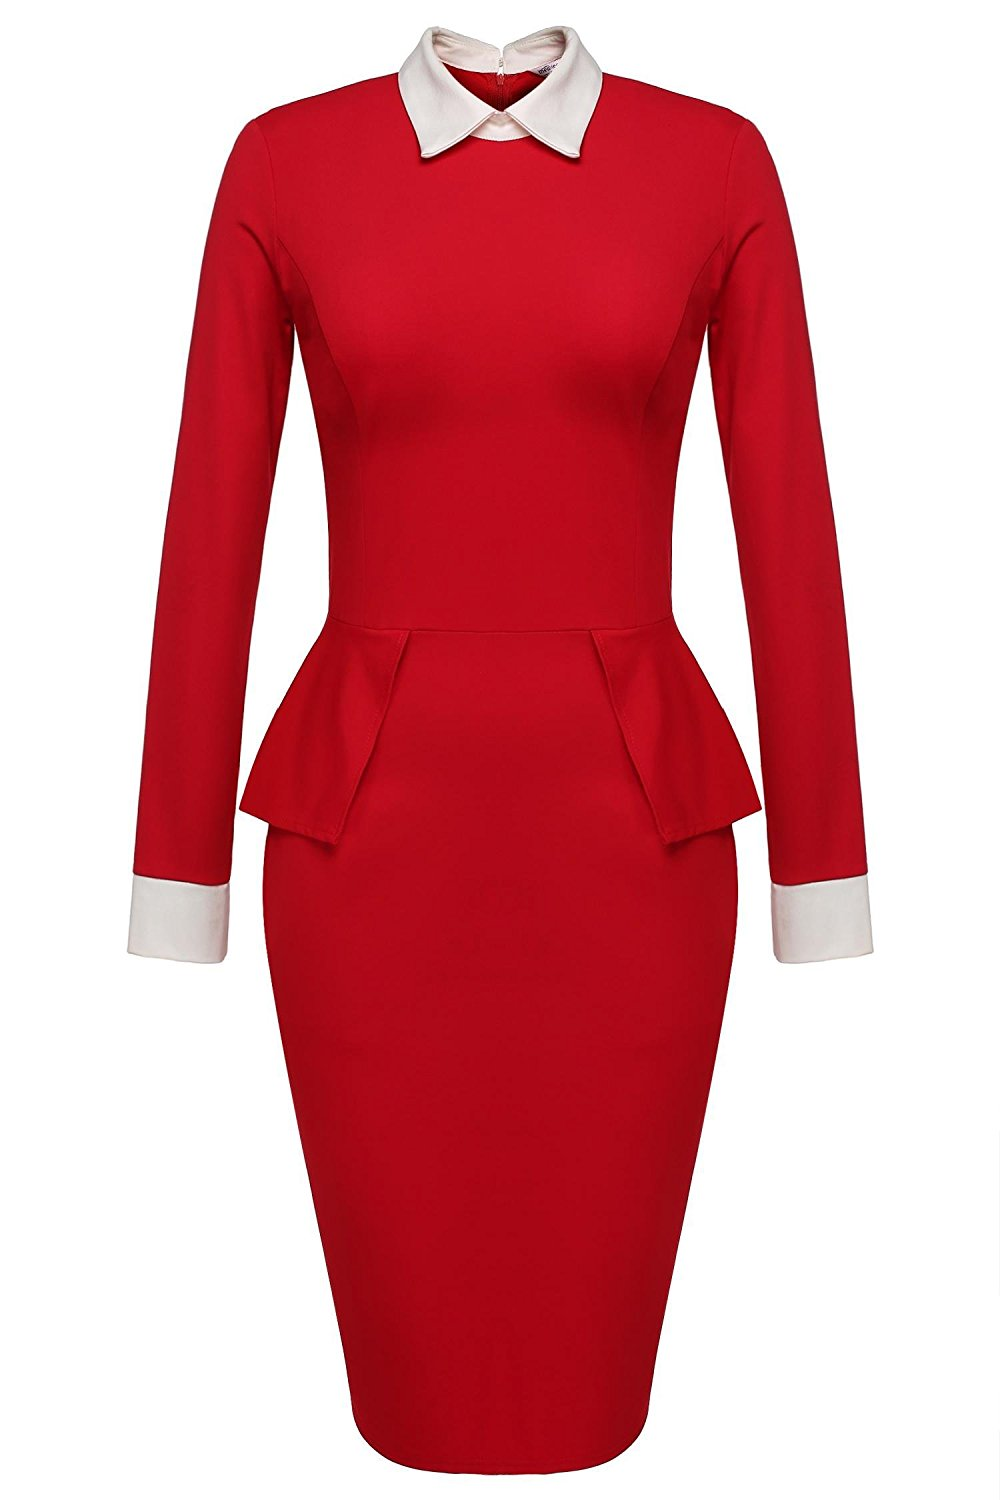 Cheap Discount Womens Suits Find Discount Womens Suits Deals On